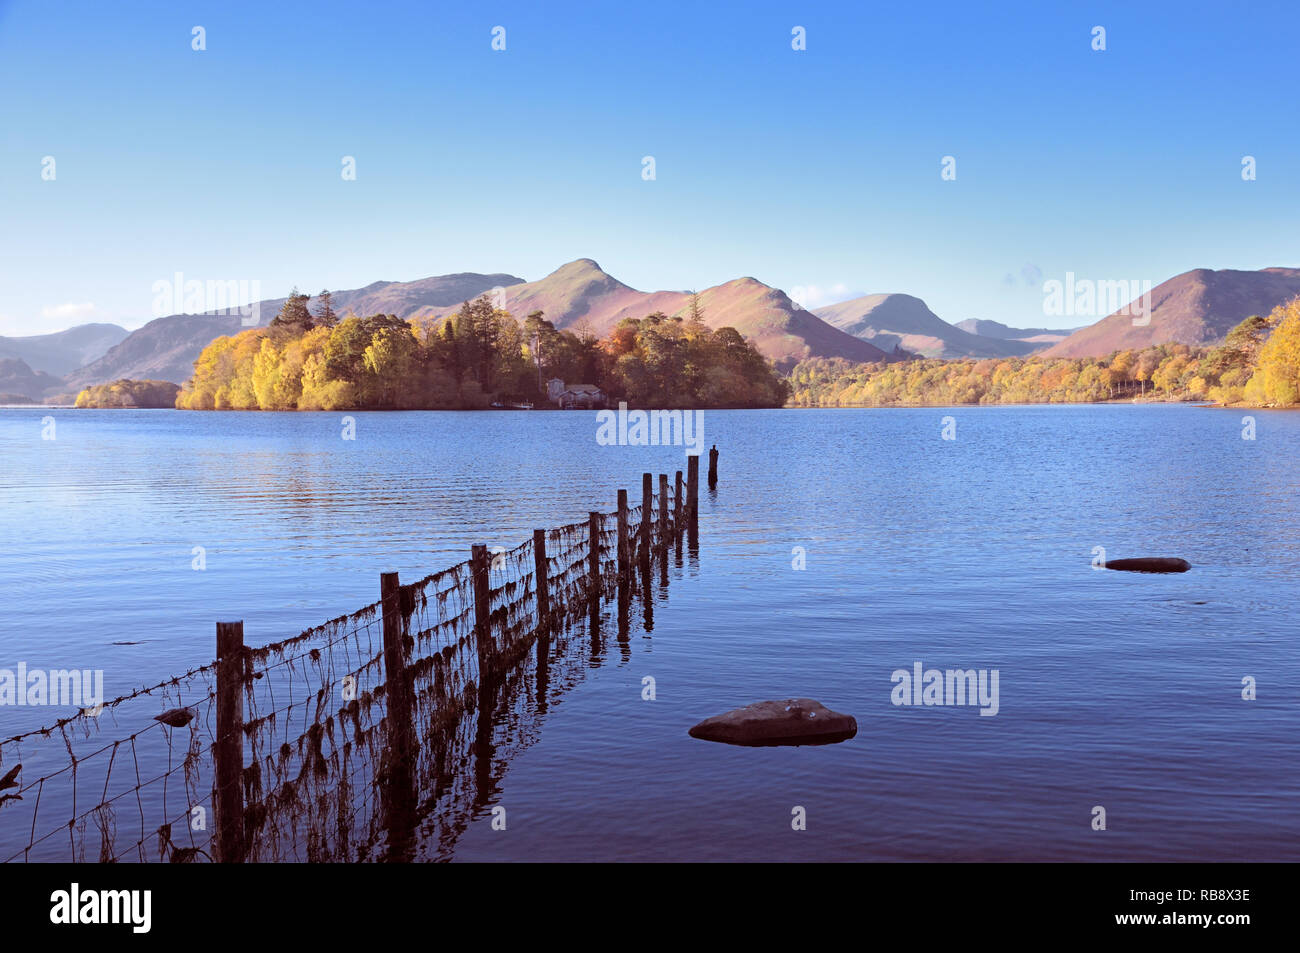 A view from the shores of Derwentwater towards Derwent Isle and Catbells, Lake District, England, UK - Stock Image